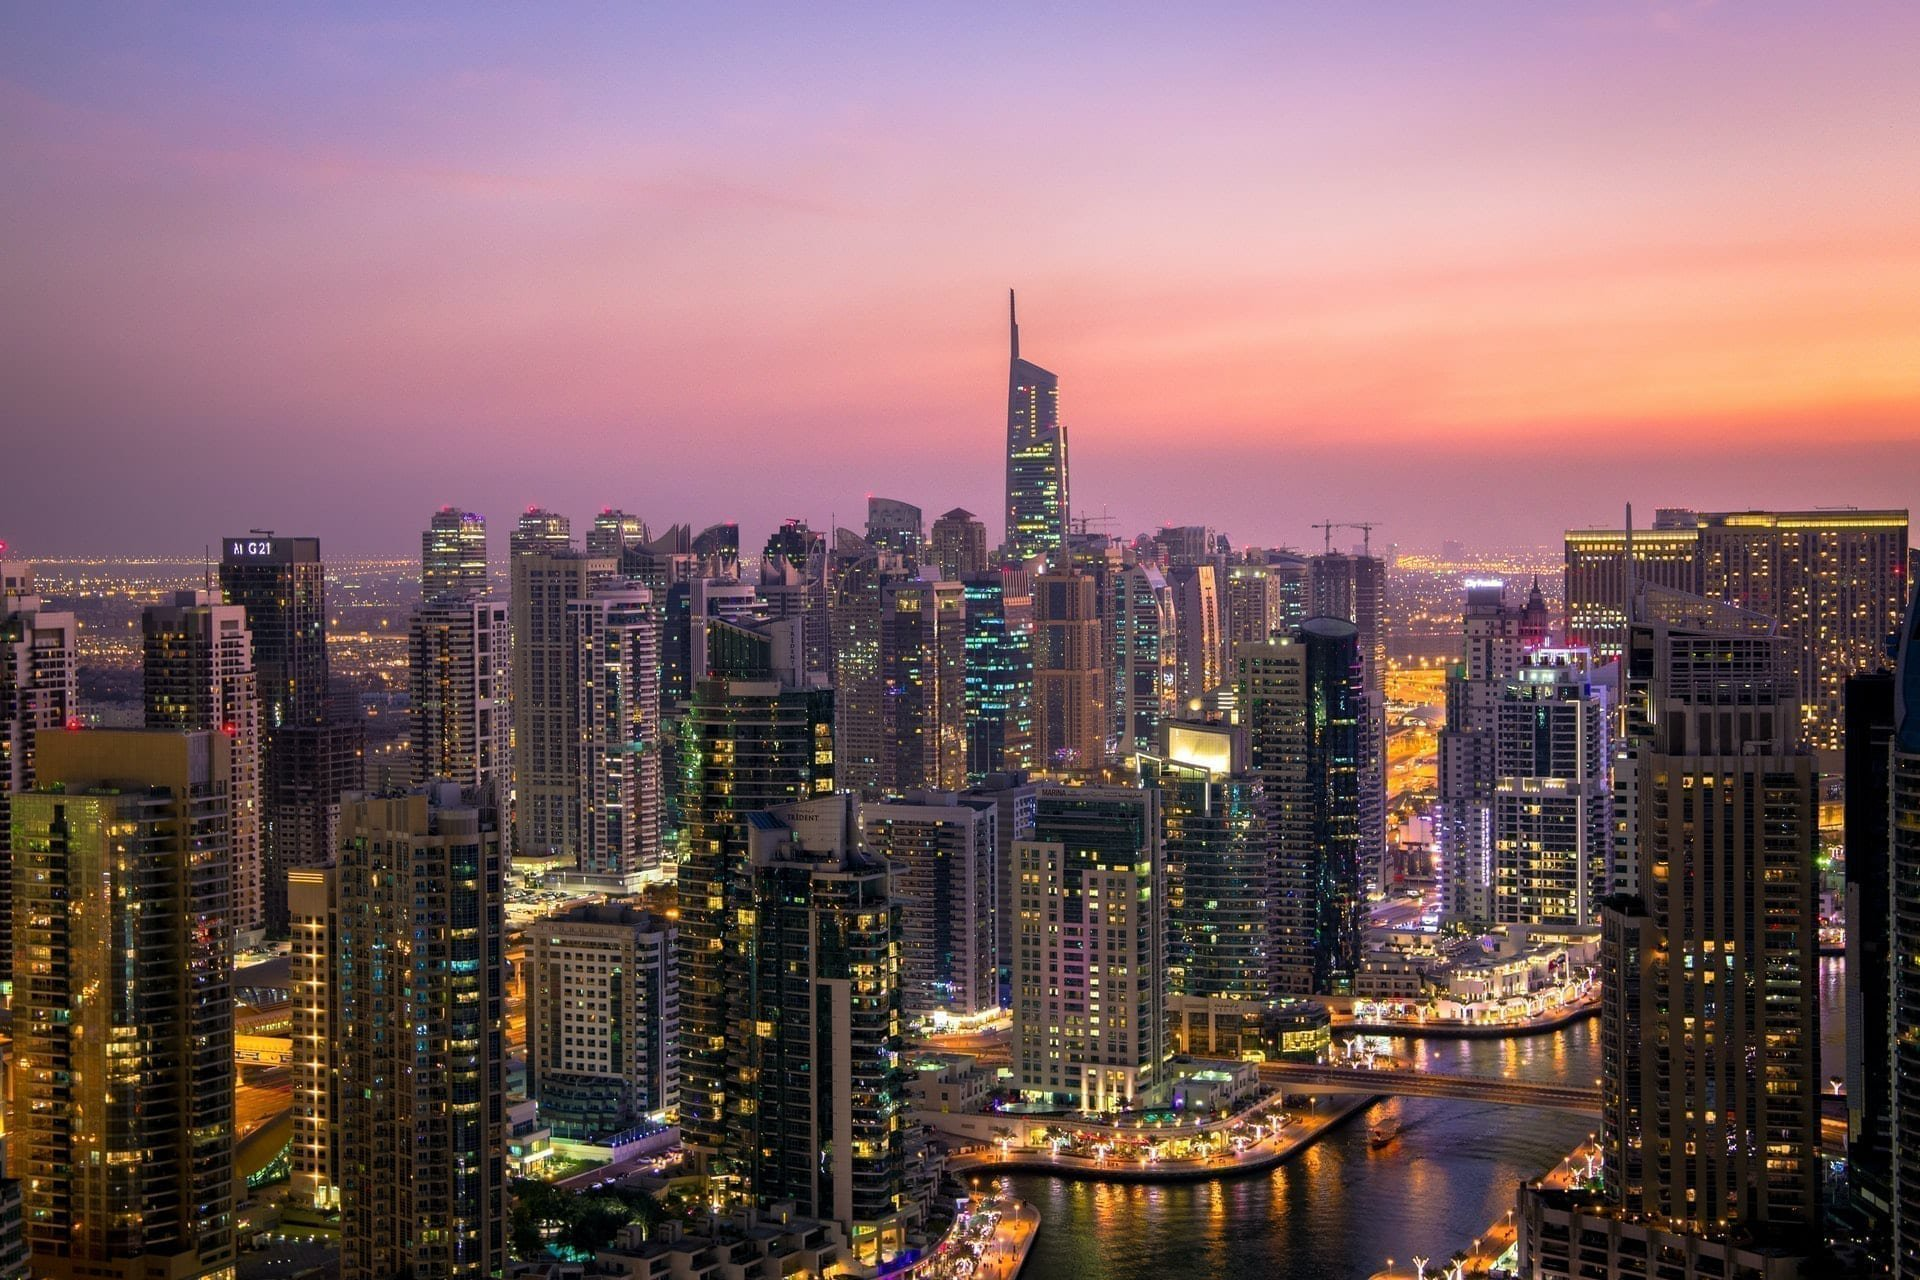 Buying Real Estate In Dubai: Do's and Don'ts